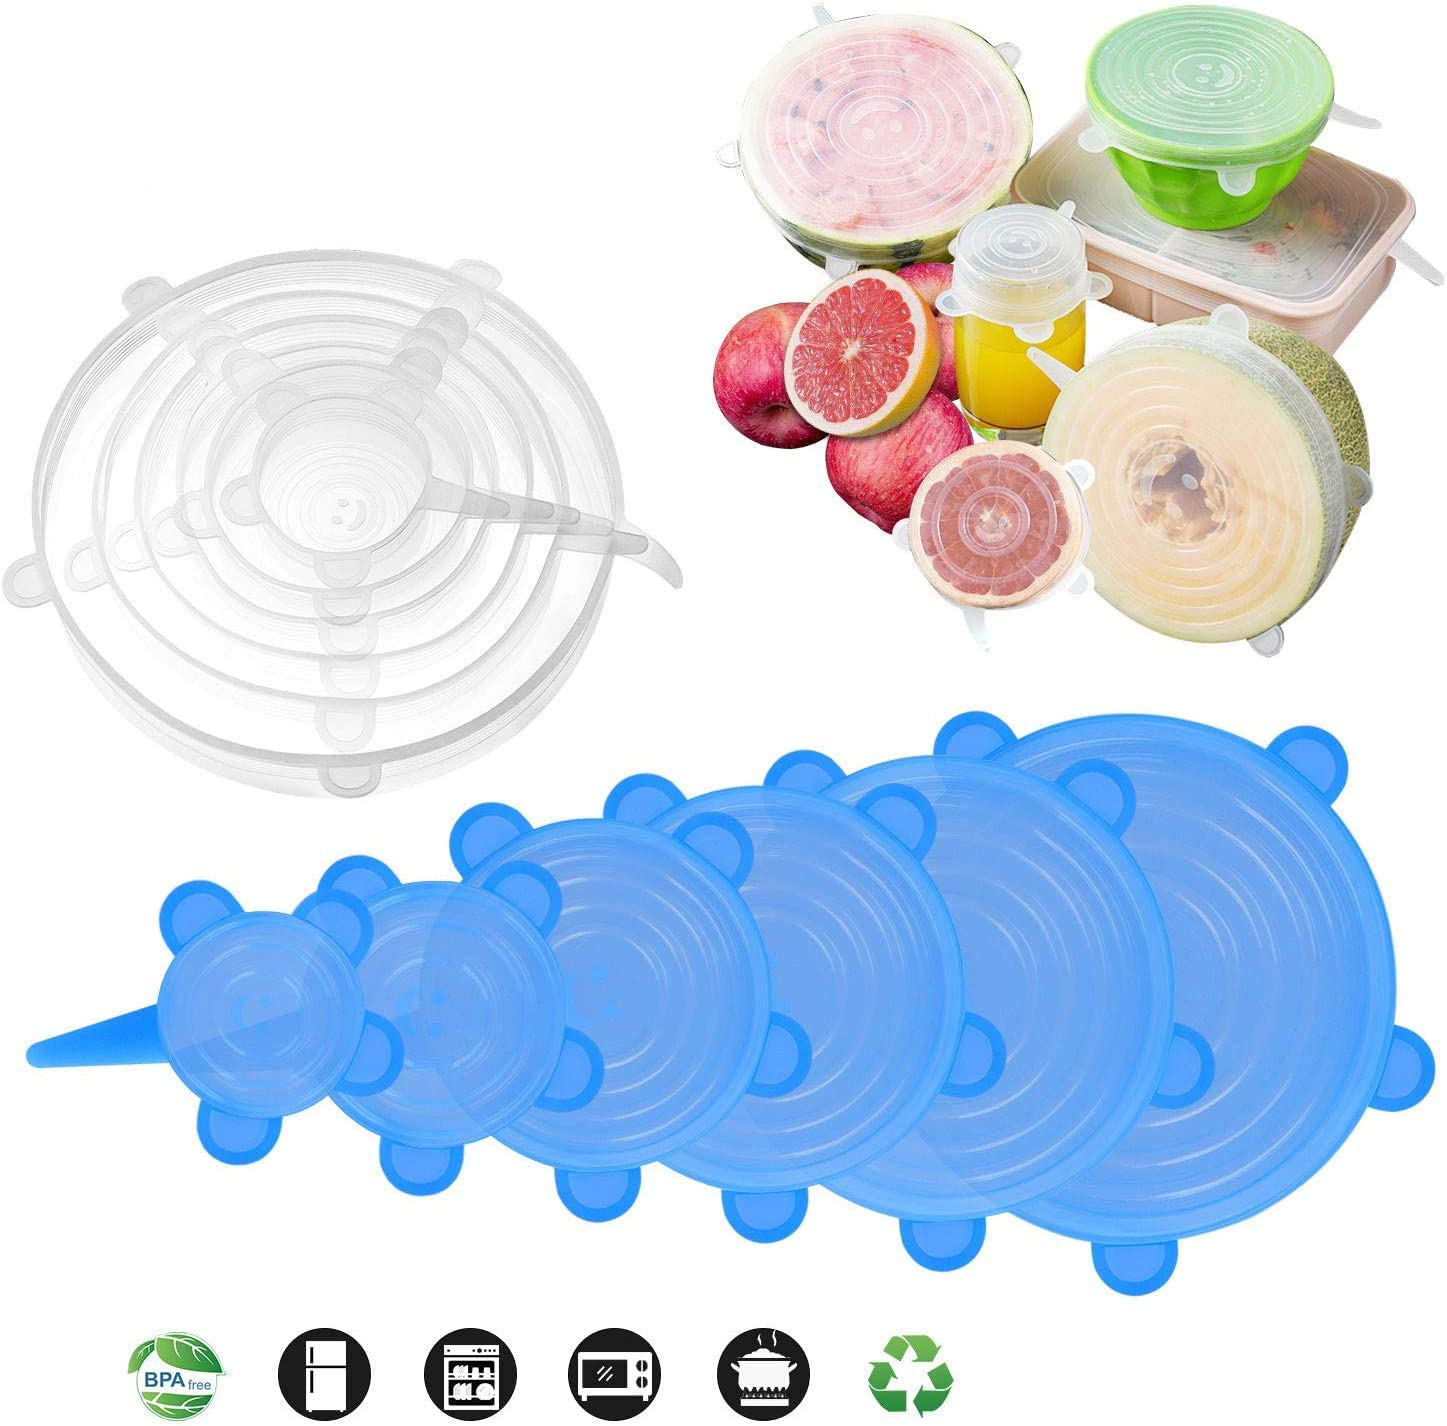 Silicone Stretch Lids, [12 Pack] Reusable Lids Fit Various Sizes & Shapes of Containers, Durable & Expandable Food Covers to Keep Food Fresh, Silicone Bowl Covers, Microwave, Oven & Dishwasher Safe